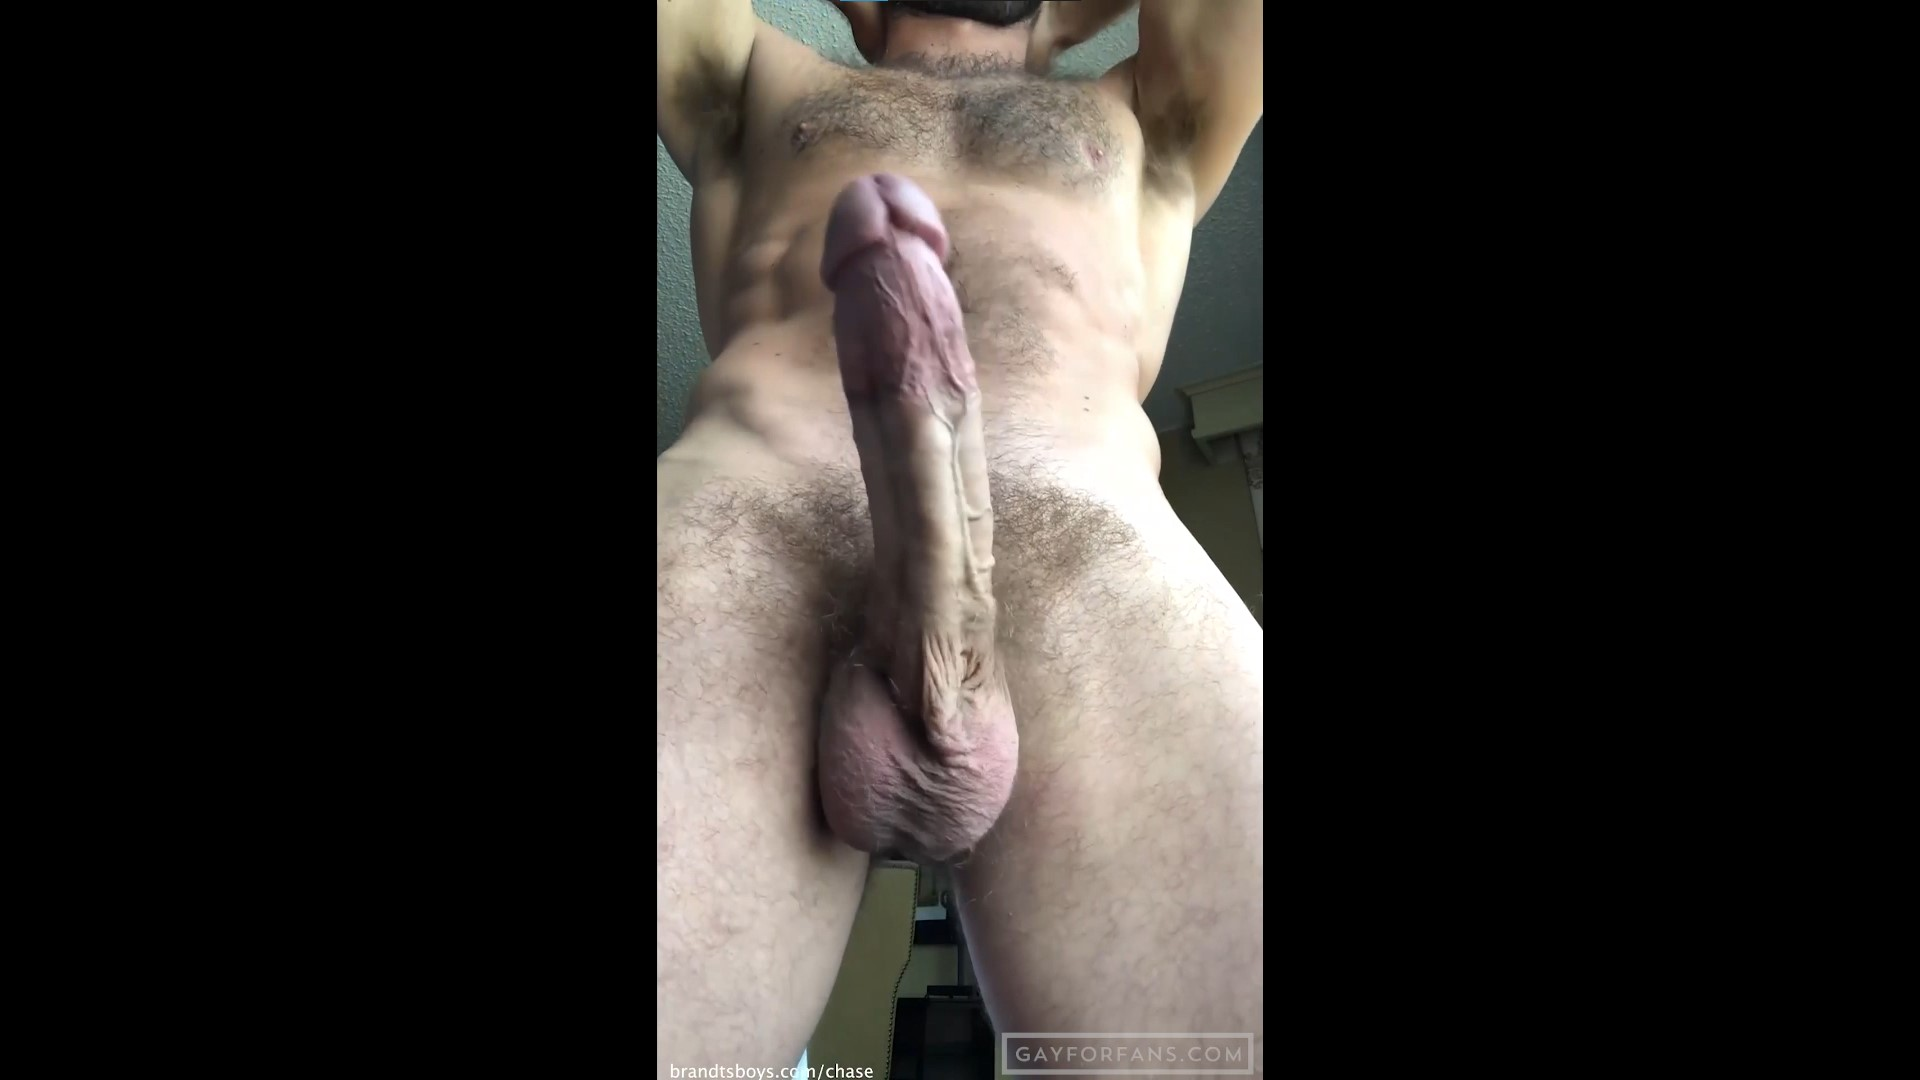 Jerking off after work - ChasexBrandt